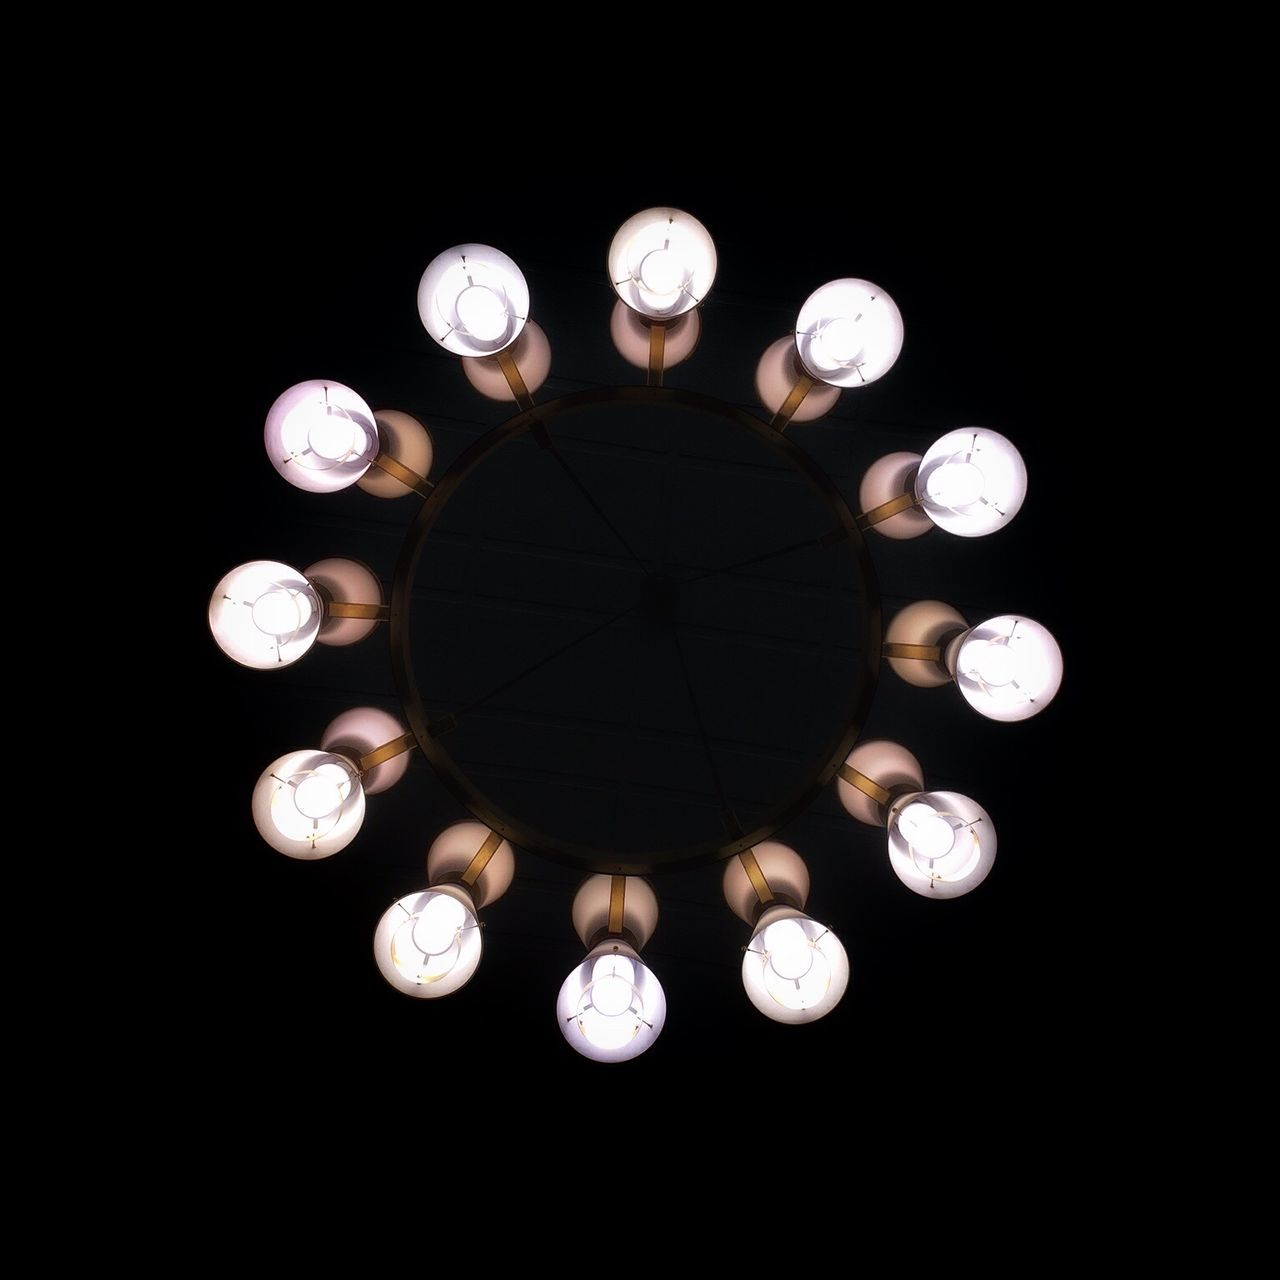 167 / 365 Light Minimalist chandelier iphonography Circle decoration bulbs iphone 6 Symetry Fine Art Photography